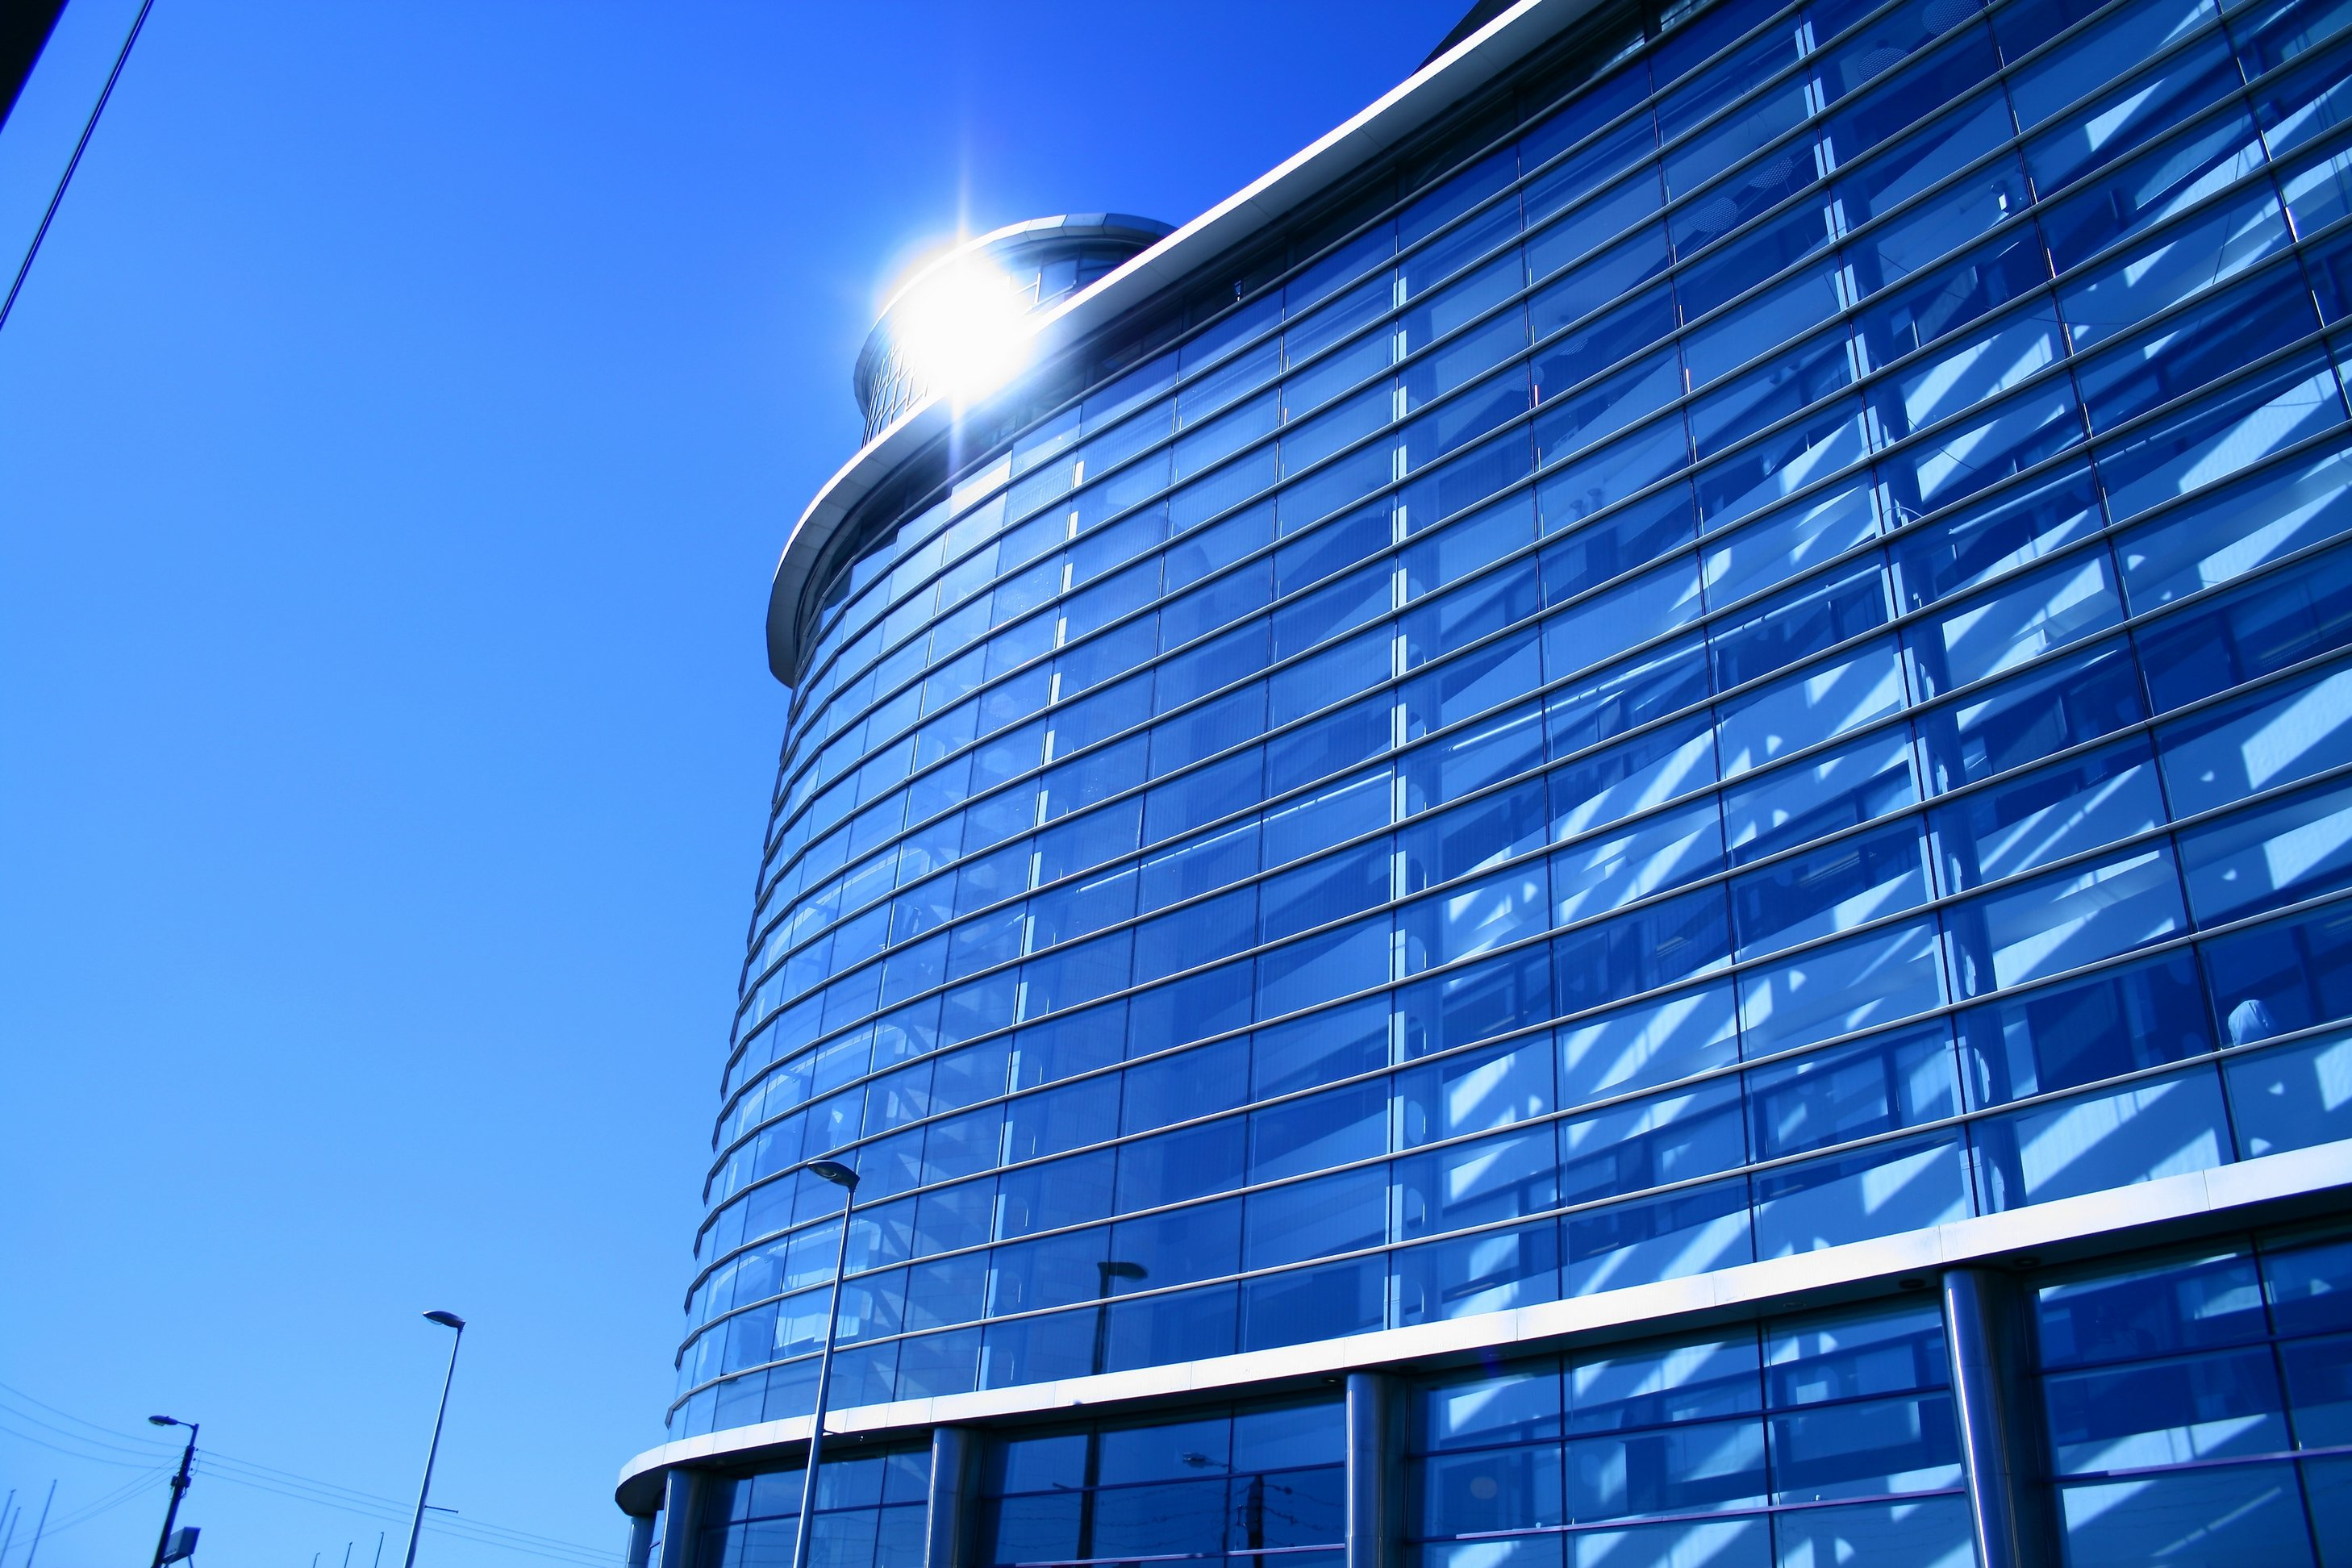 Curved Glass - Modern Building